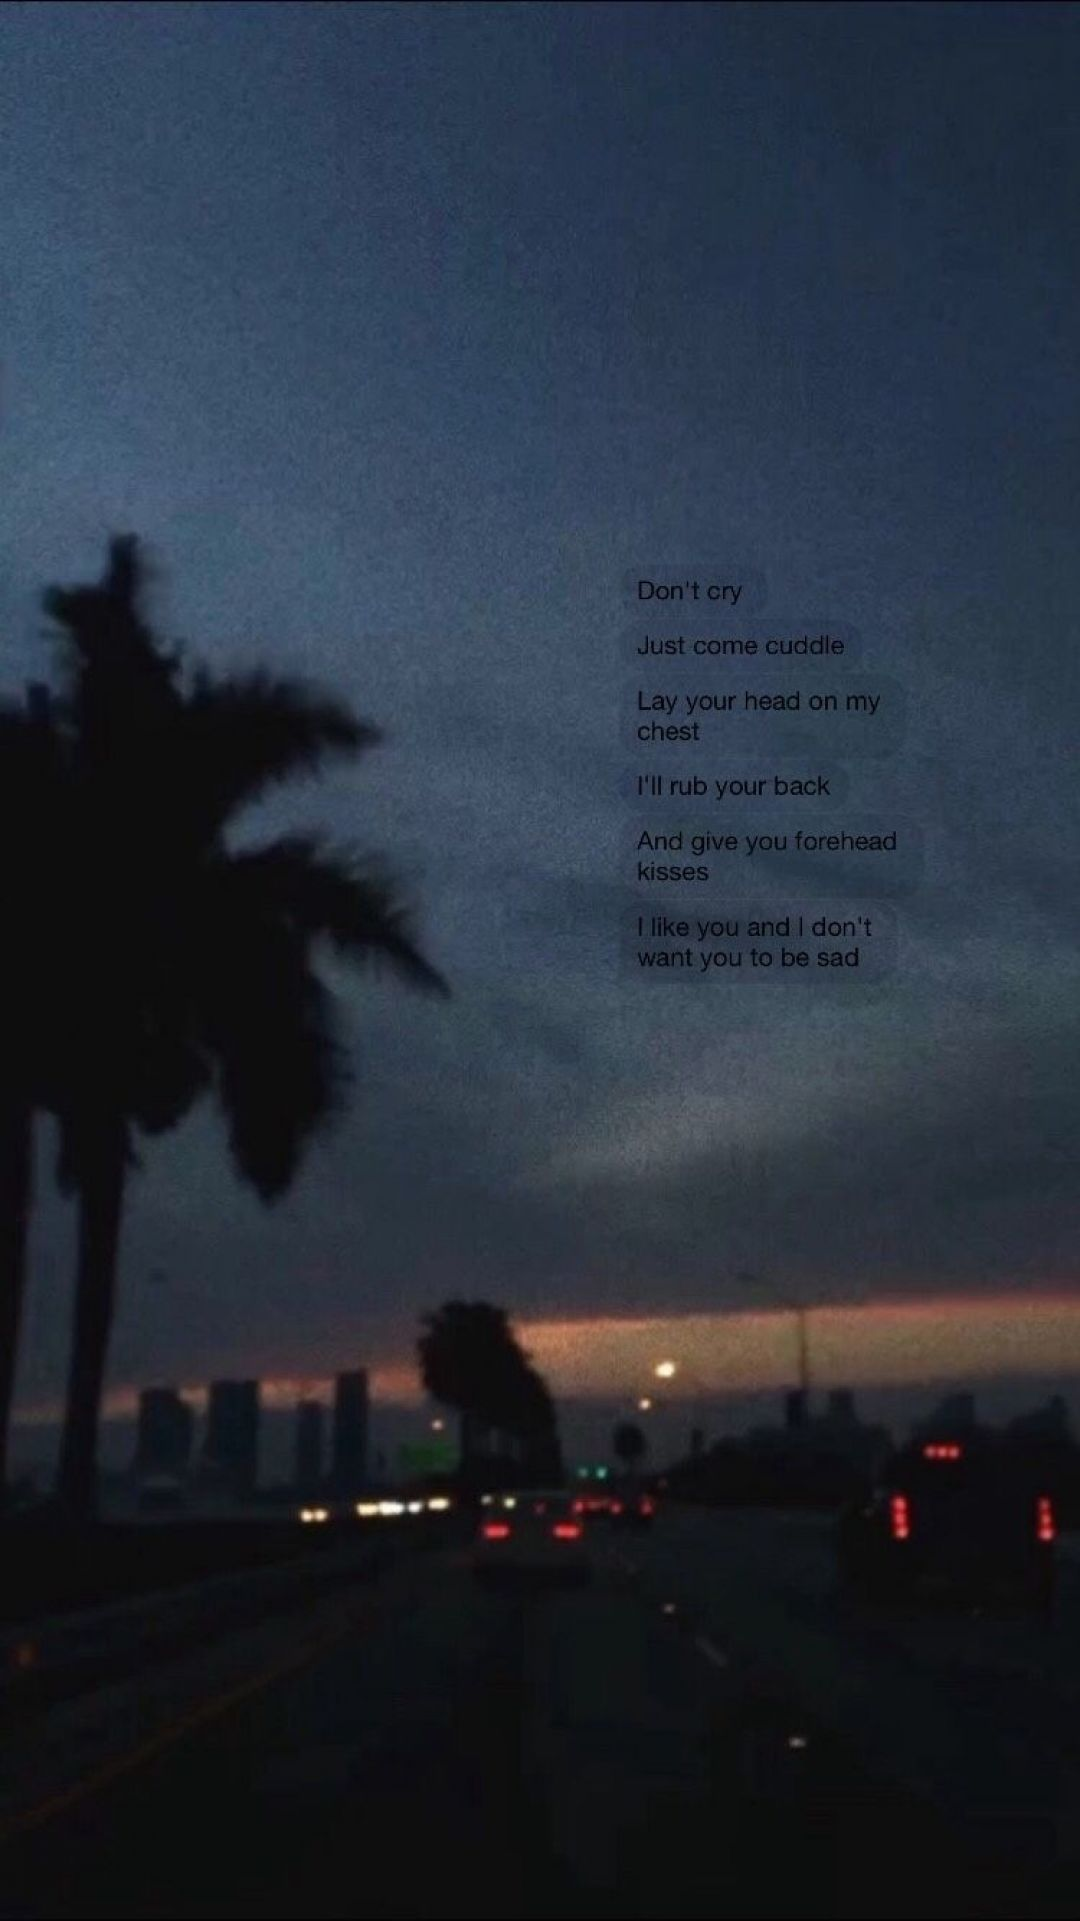 45 Sad Aesthetic Tumblr Images Hd Photos 1080p Wallpapers Android Iphone 2021